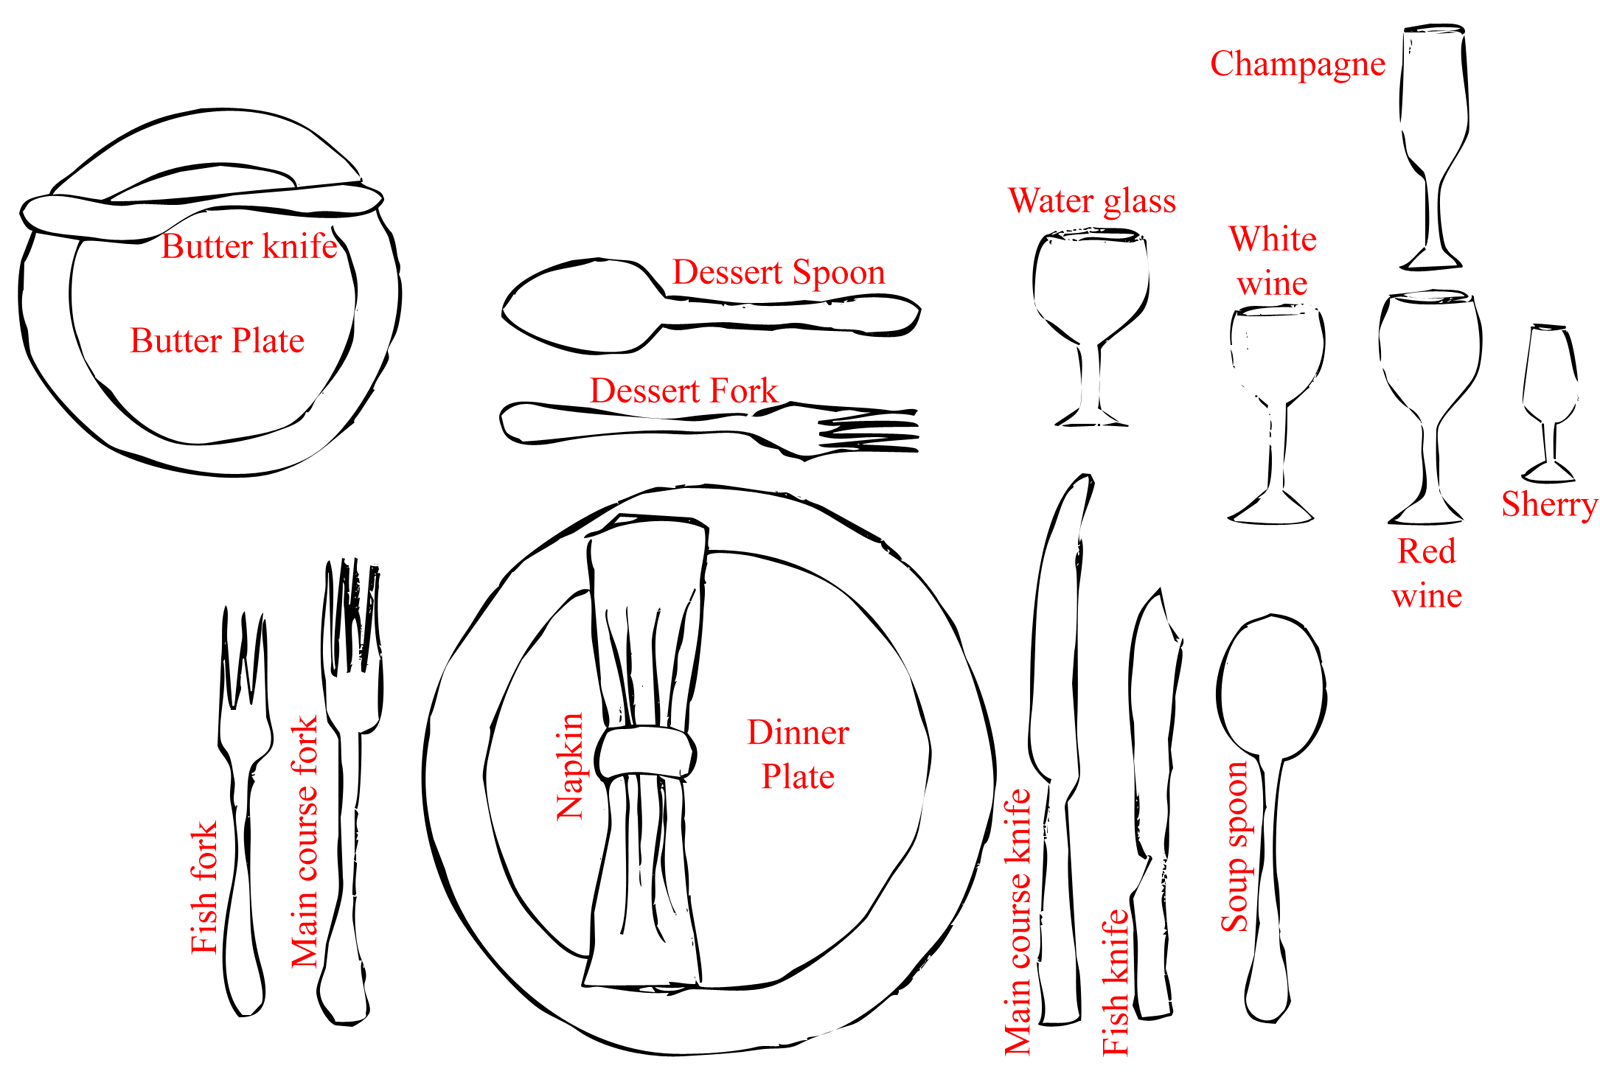 medieval table settings | Formal Dinner Settings | Prop Agenda  sc 1 st  Pinterest : victorian table setting diagram - pezcame.com